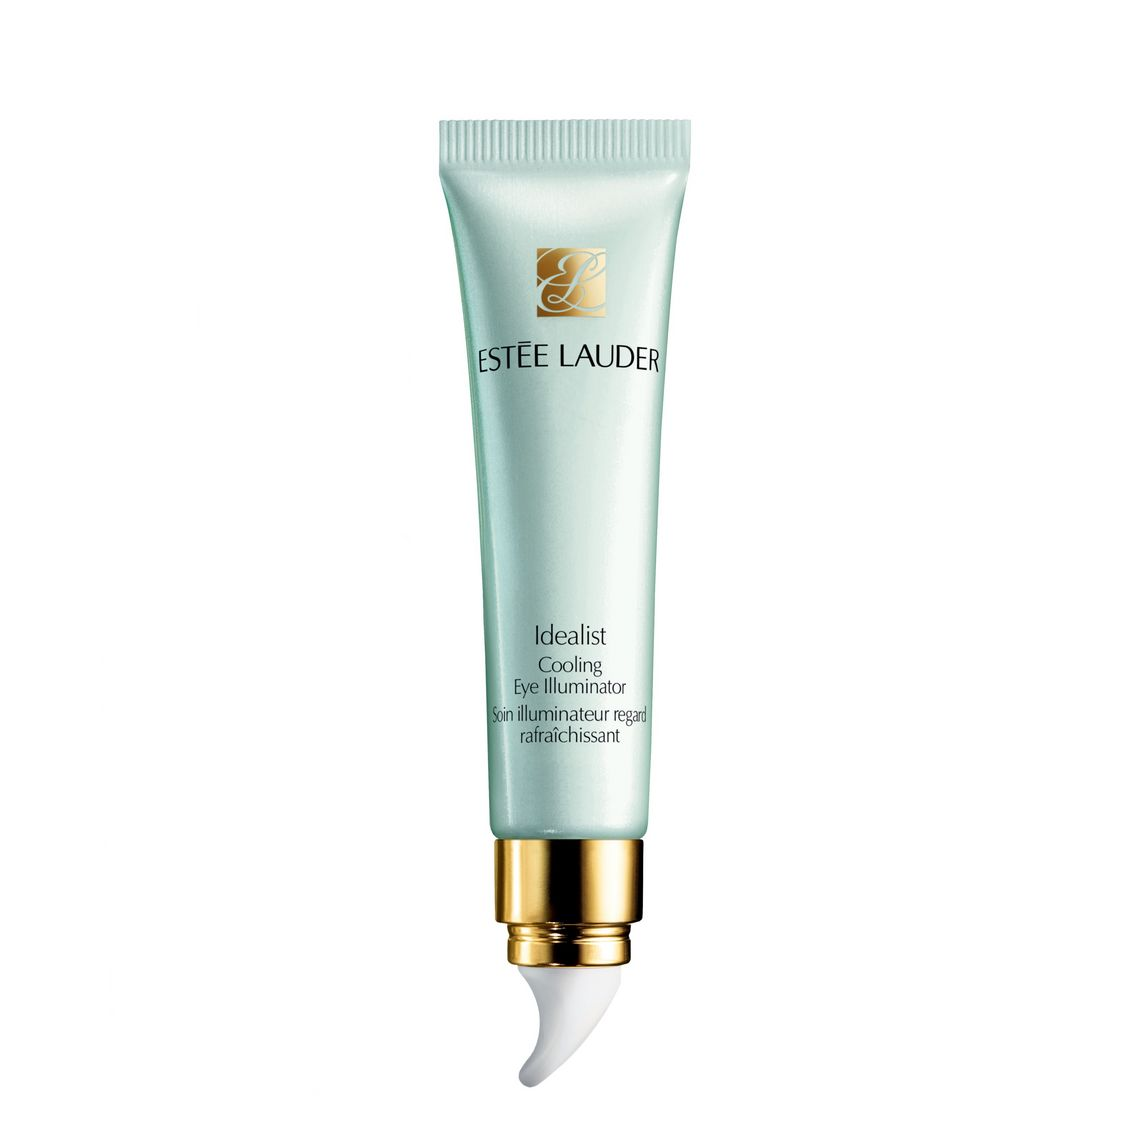 Idealist Cooling Eye Illuminator: Estée Lauder